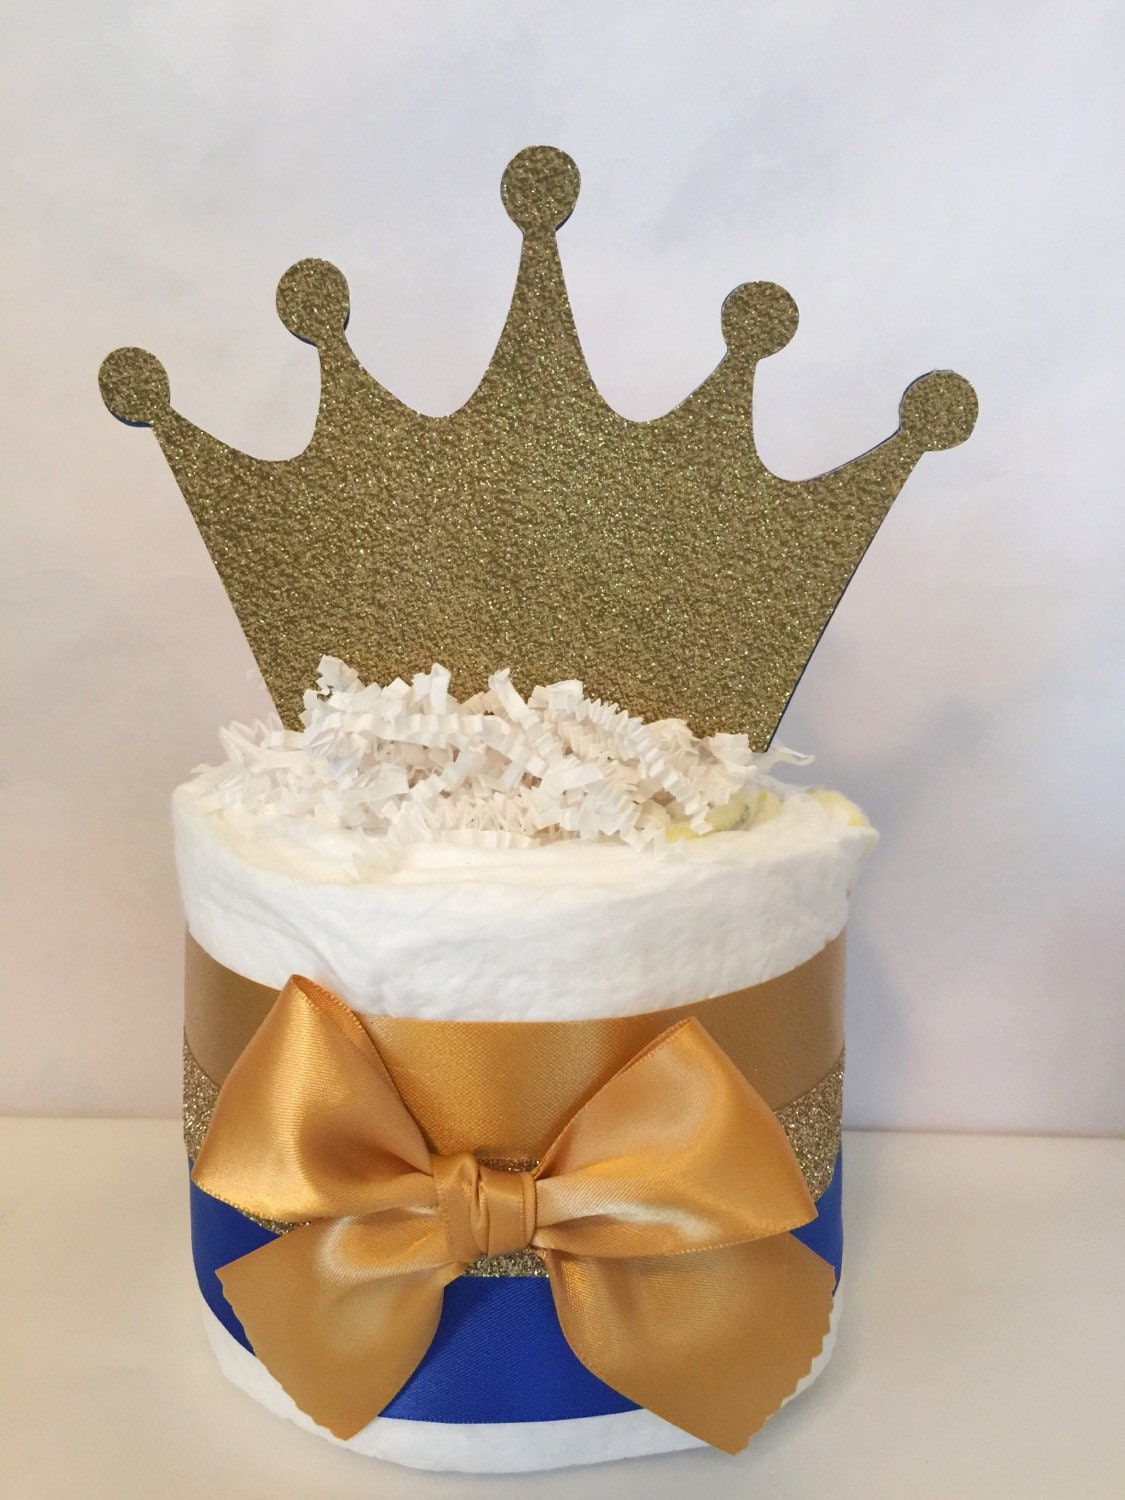 cakes in royal blue and gold prince theme baby shower decorations